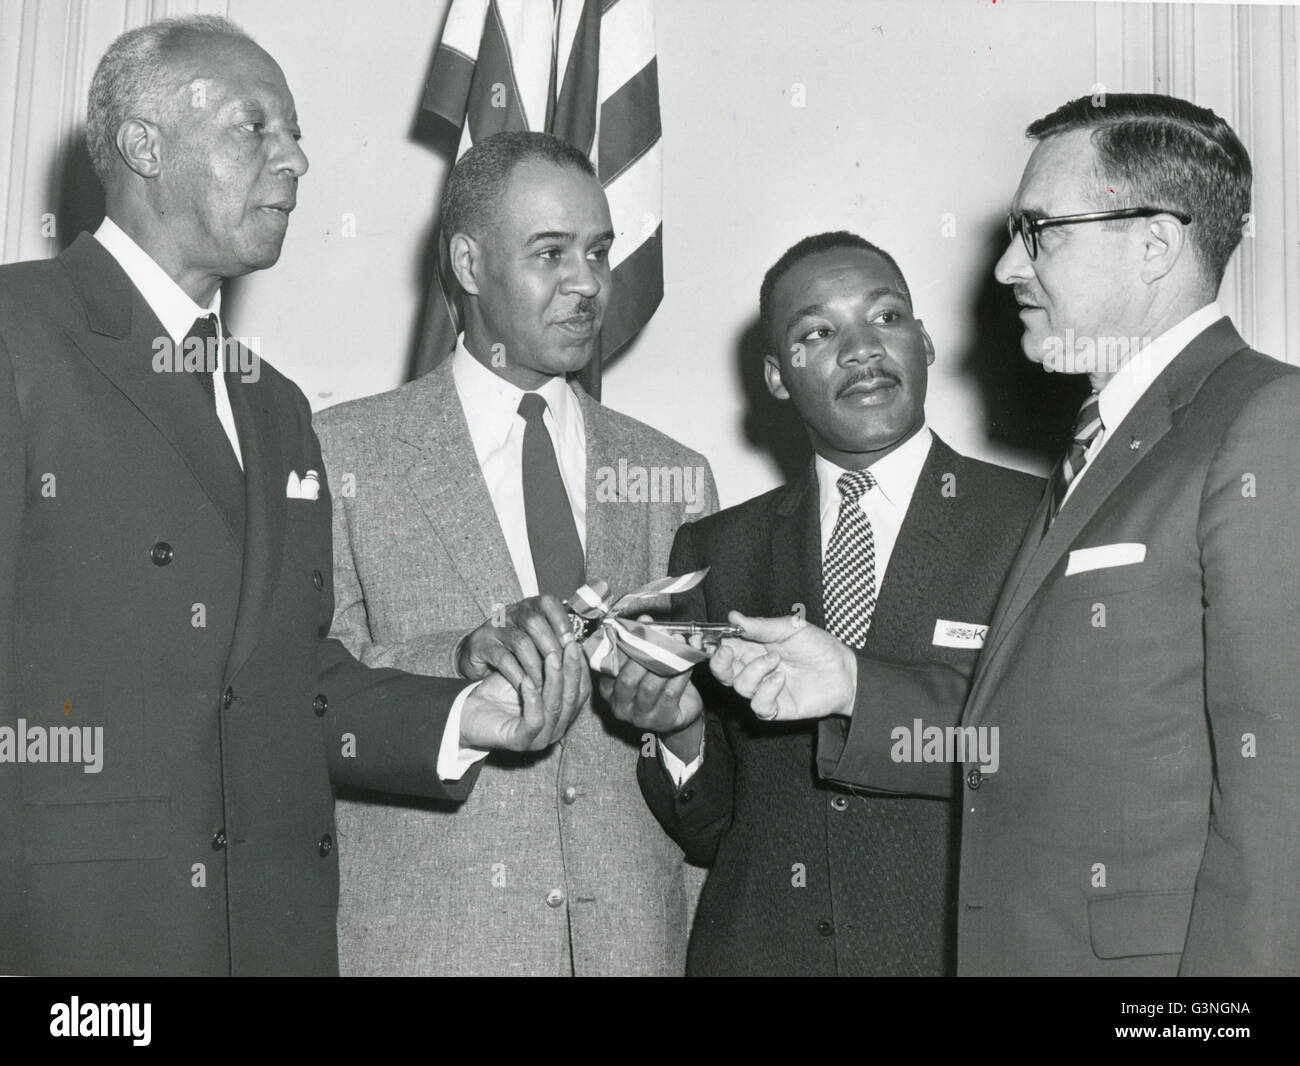 Leaders of the Prayer Pilgrimage to Lincoln Memorial sponsored by the NAACP receive the key to the District of Columbia - Stock Image